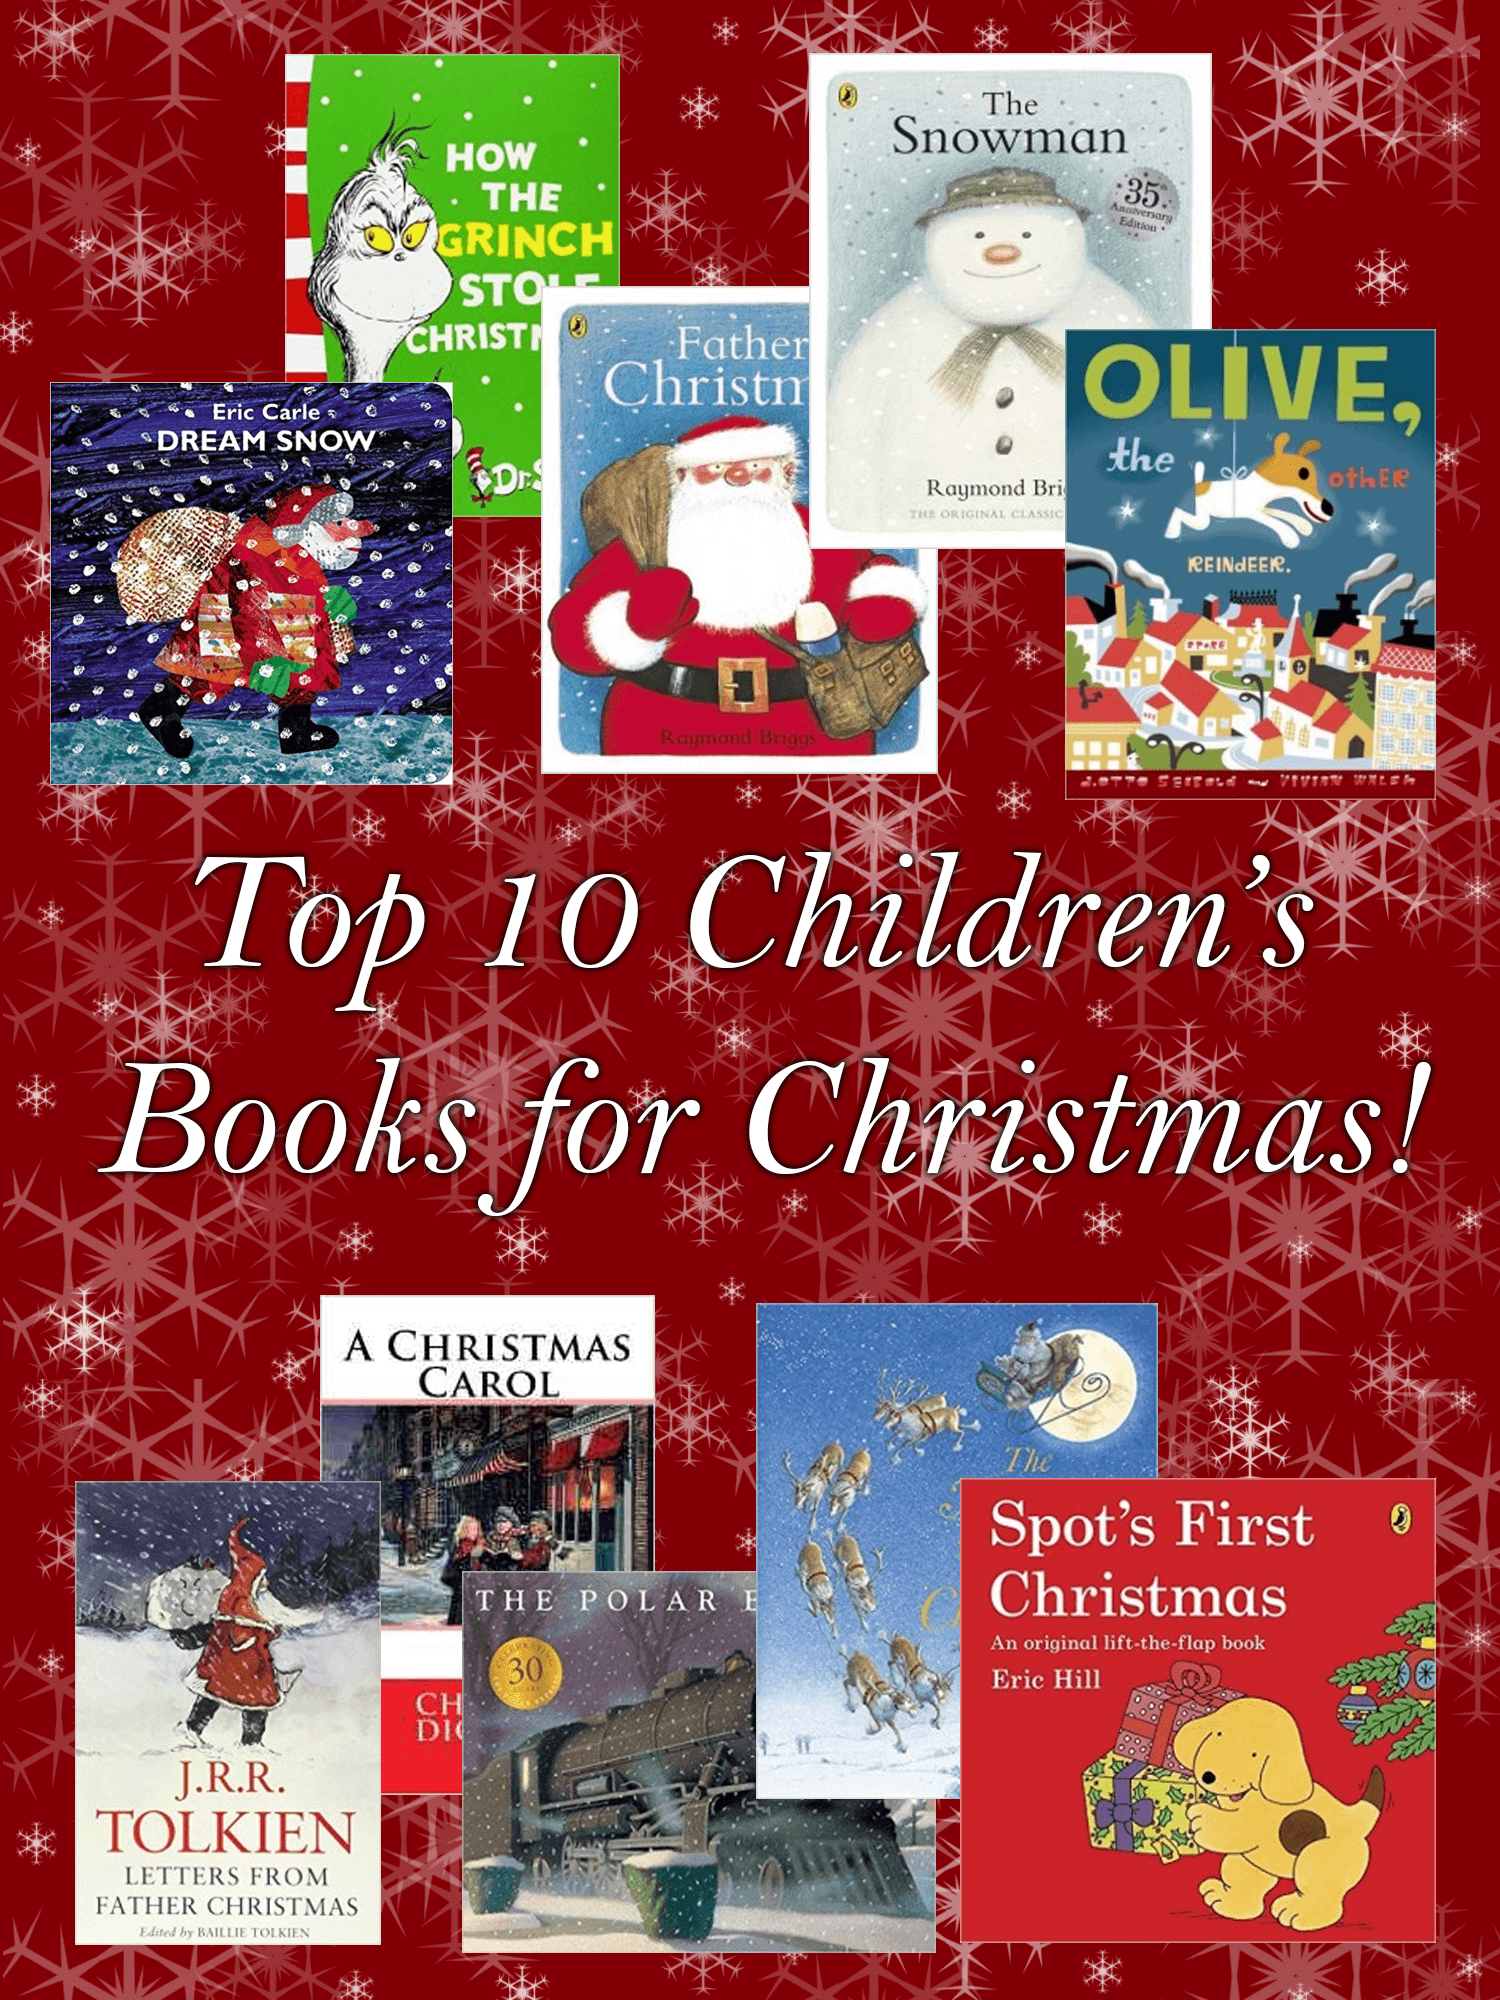 Top 10 Children's Books for Christmas_imagine forest